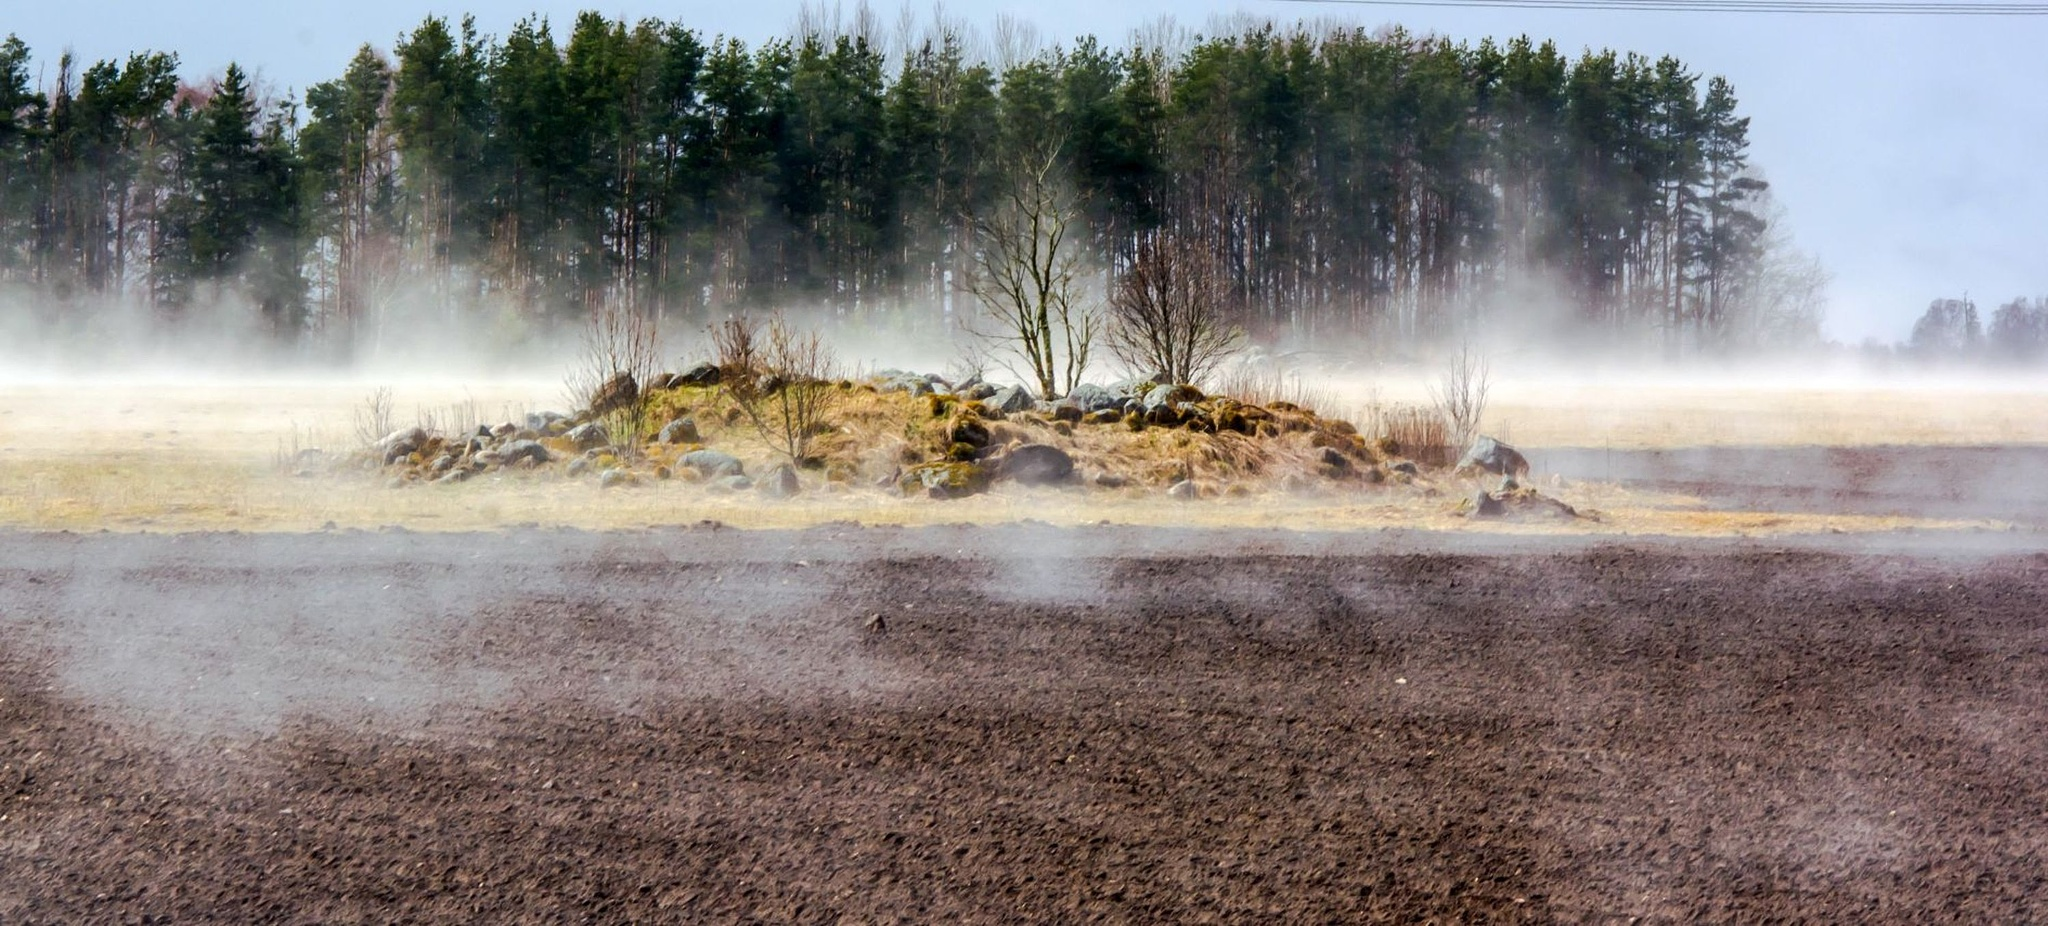 Field in steam by deville66